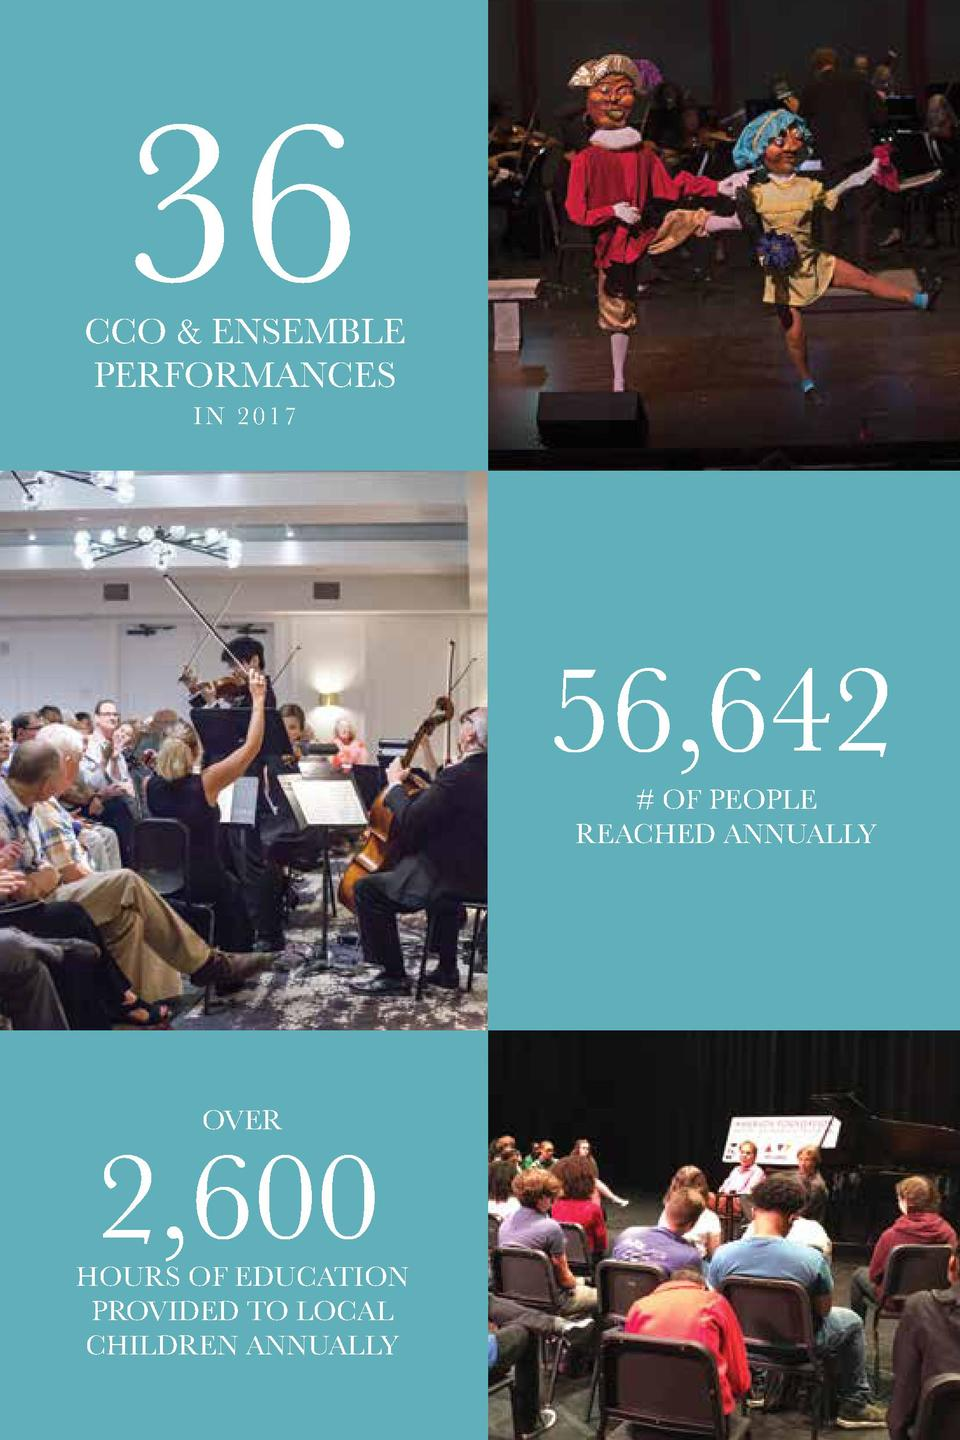 36  CCO   ENSEMBLE PERFORMANCES IN 2017  56,642   OF PEOPLE REACHED ANNUALLY  OVER  2,600  HOURS OF EDUCATION PROVIDED TO ...